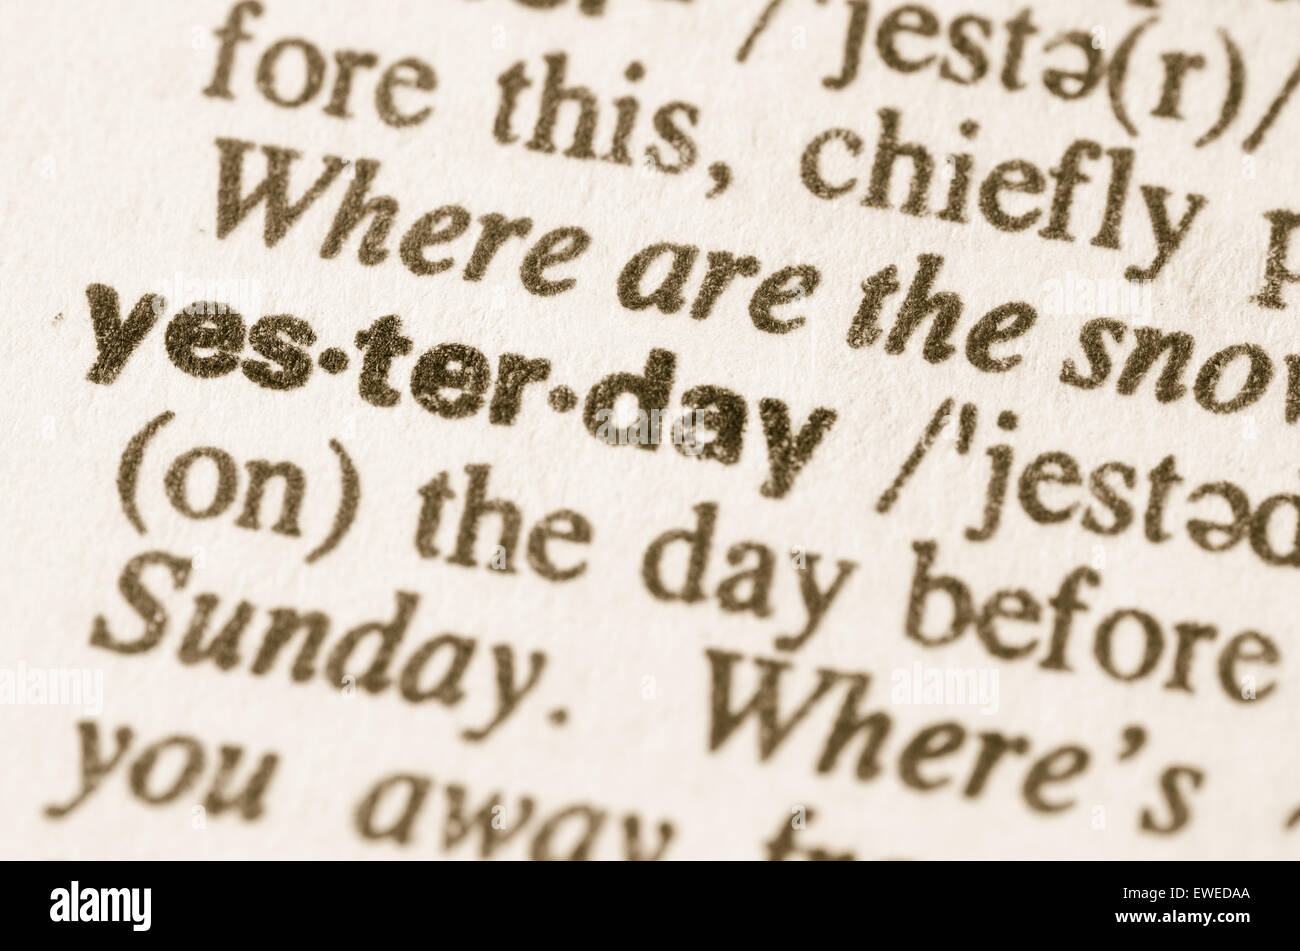 Definition of word yesterday in dictionary - Stock Image